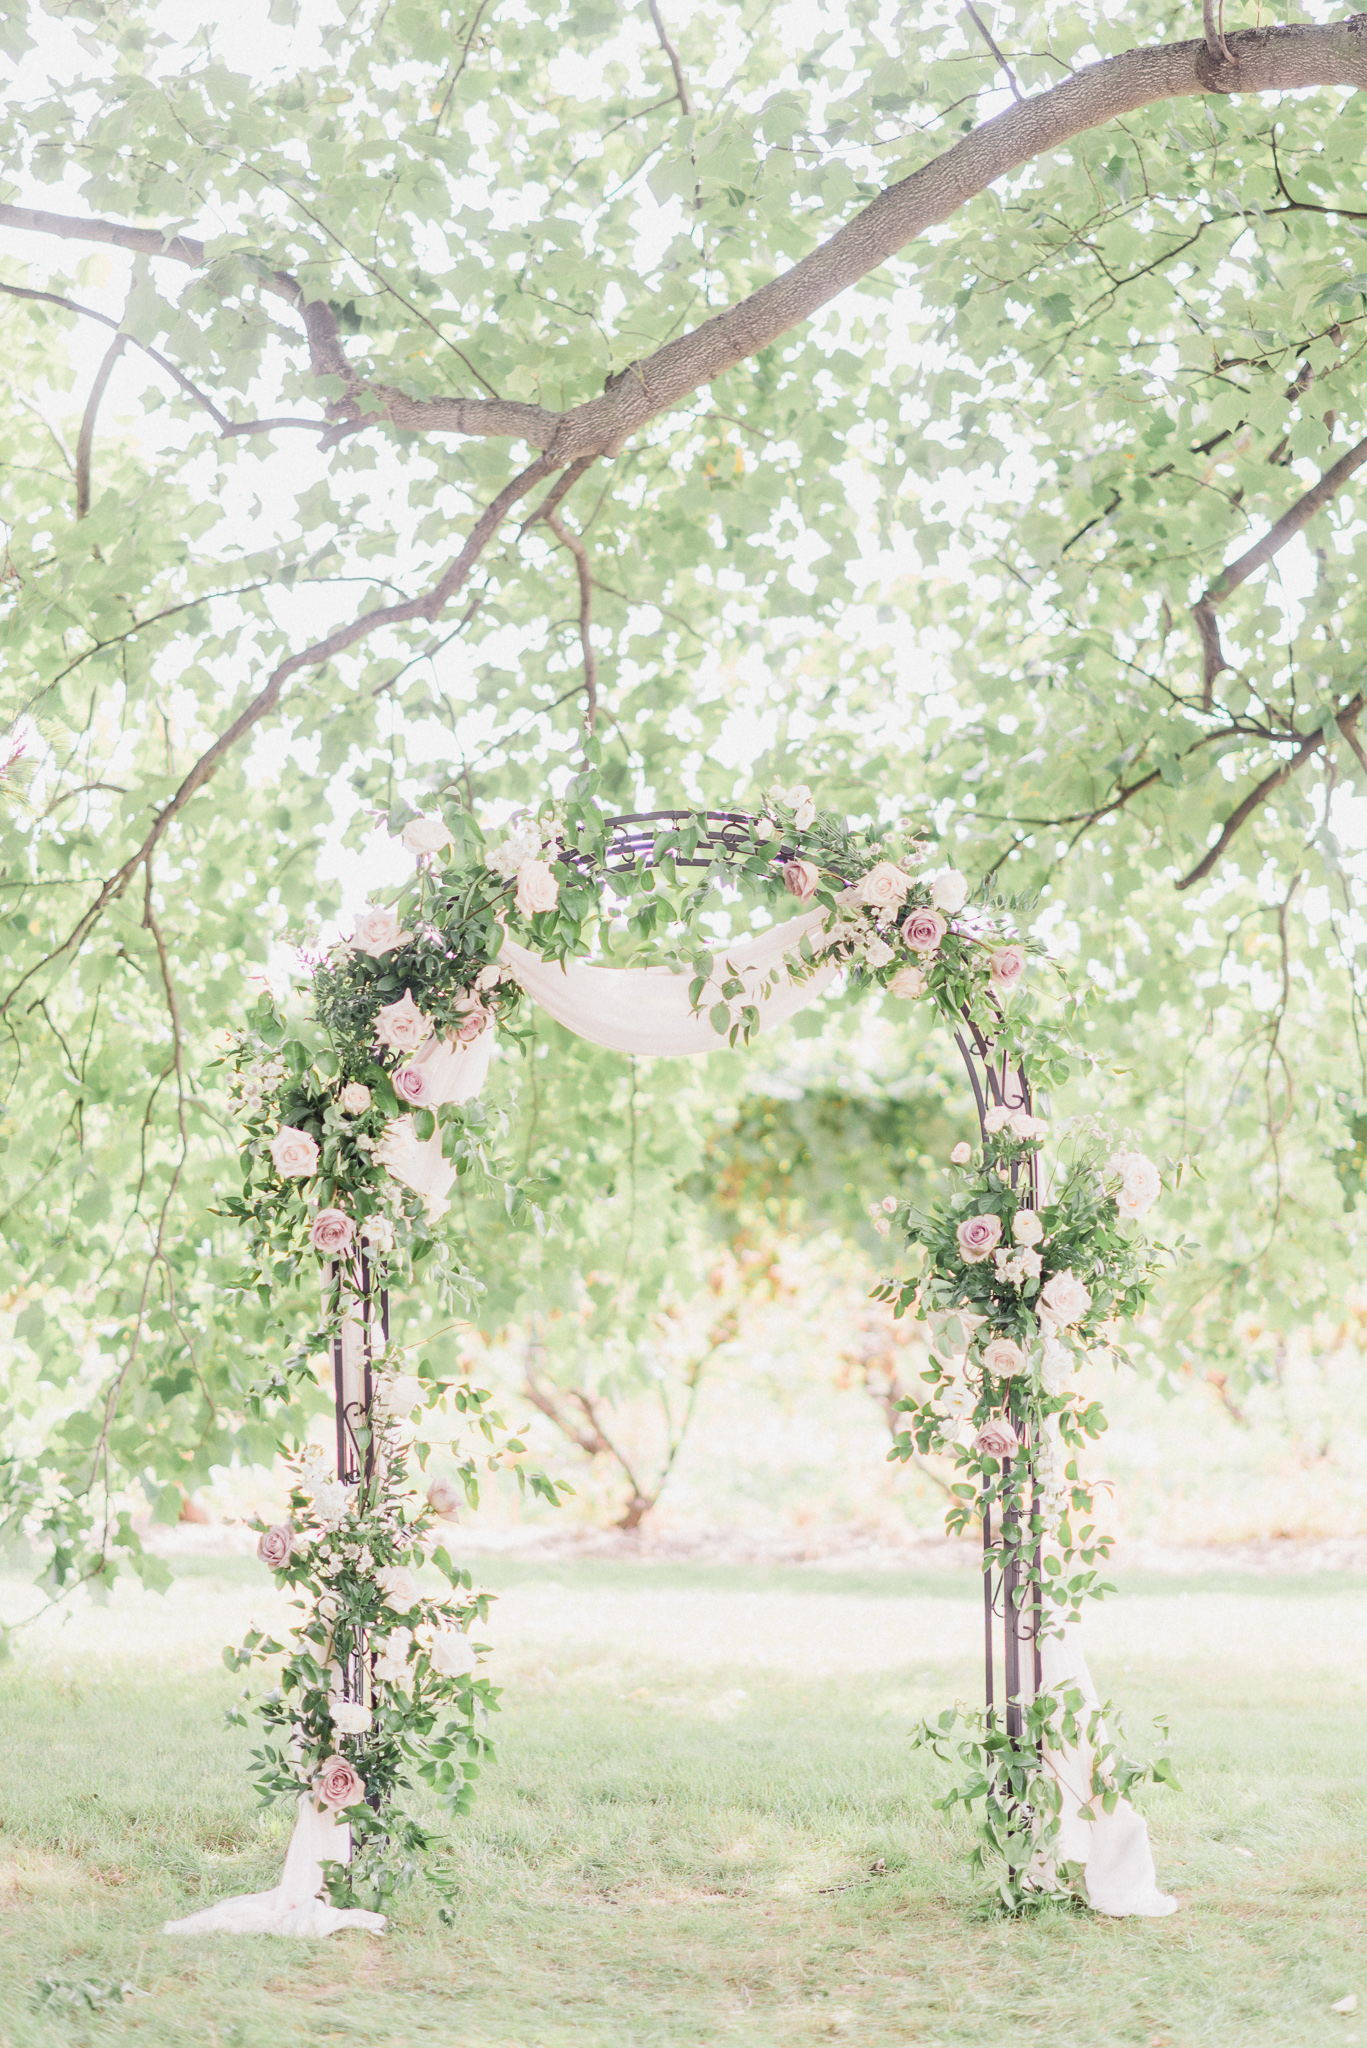 Floral ceremony arch by Mums Garden Floral Studio, photographed by Jenn Kavanagh Photography